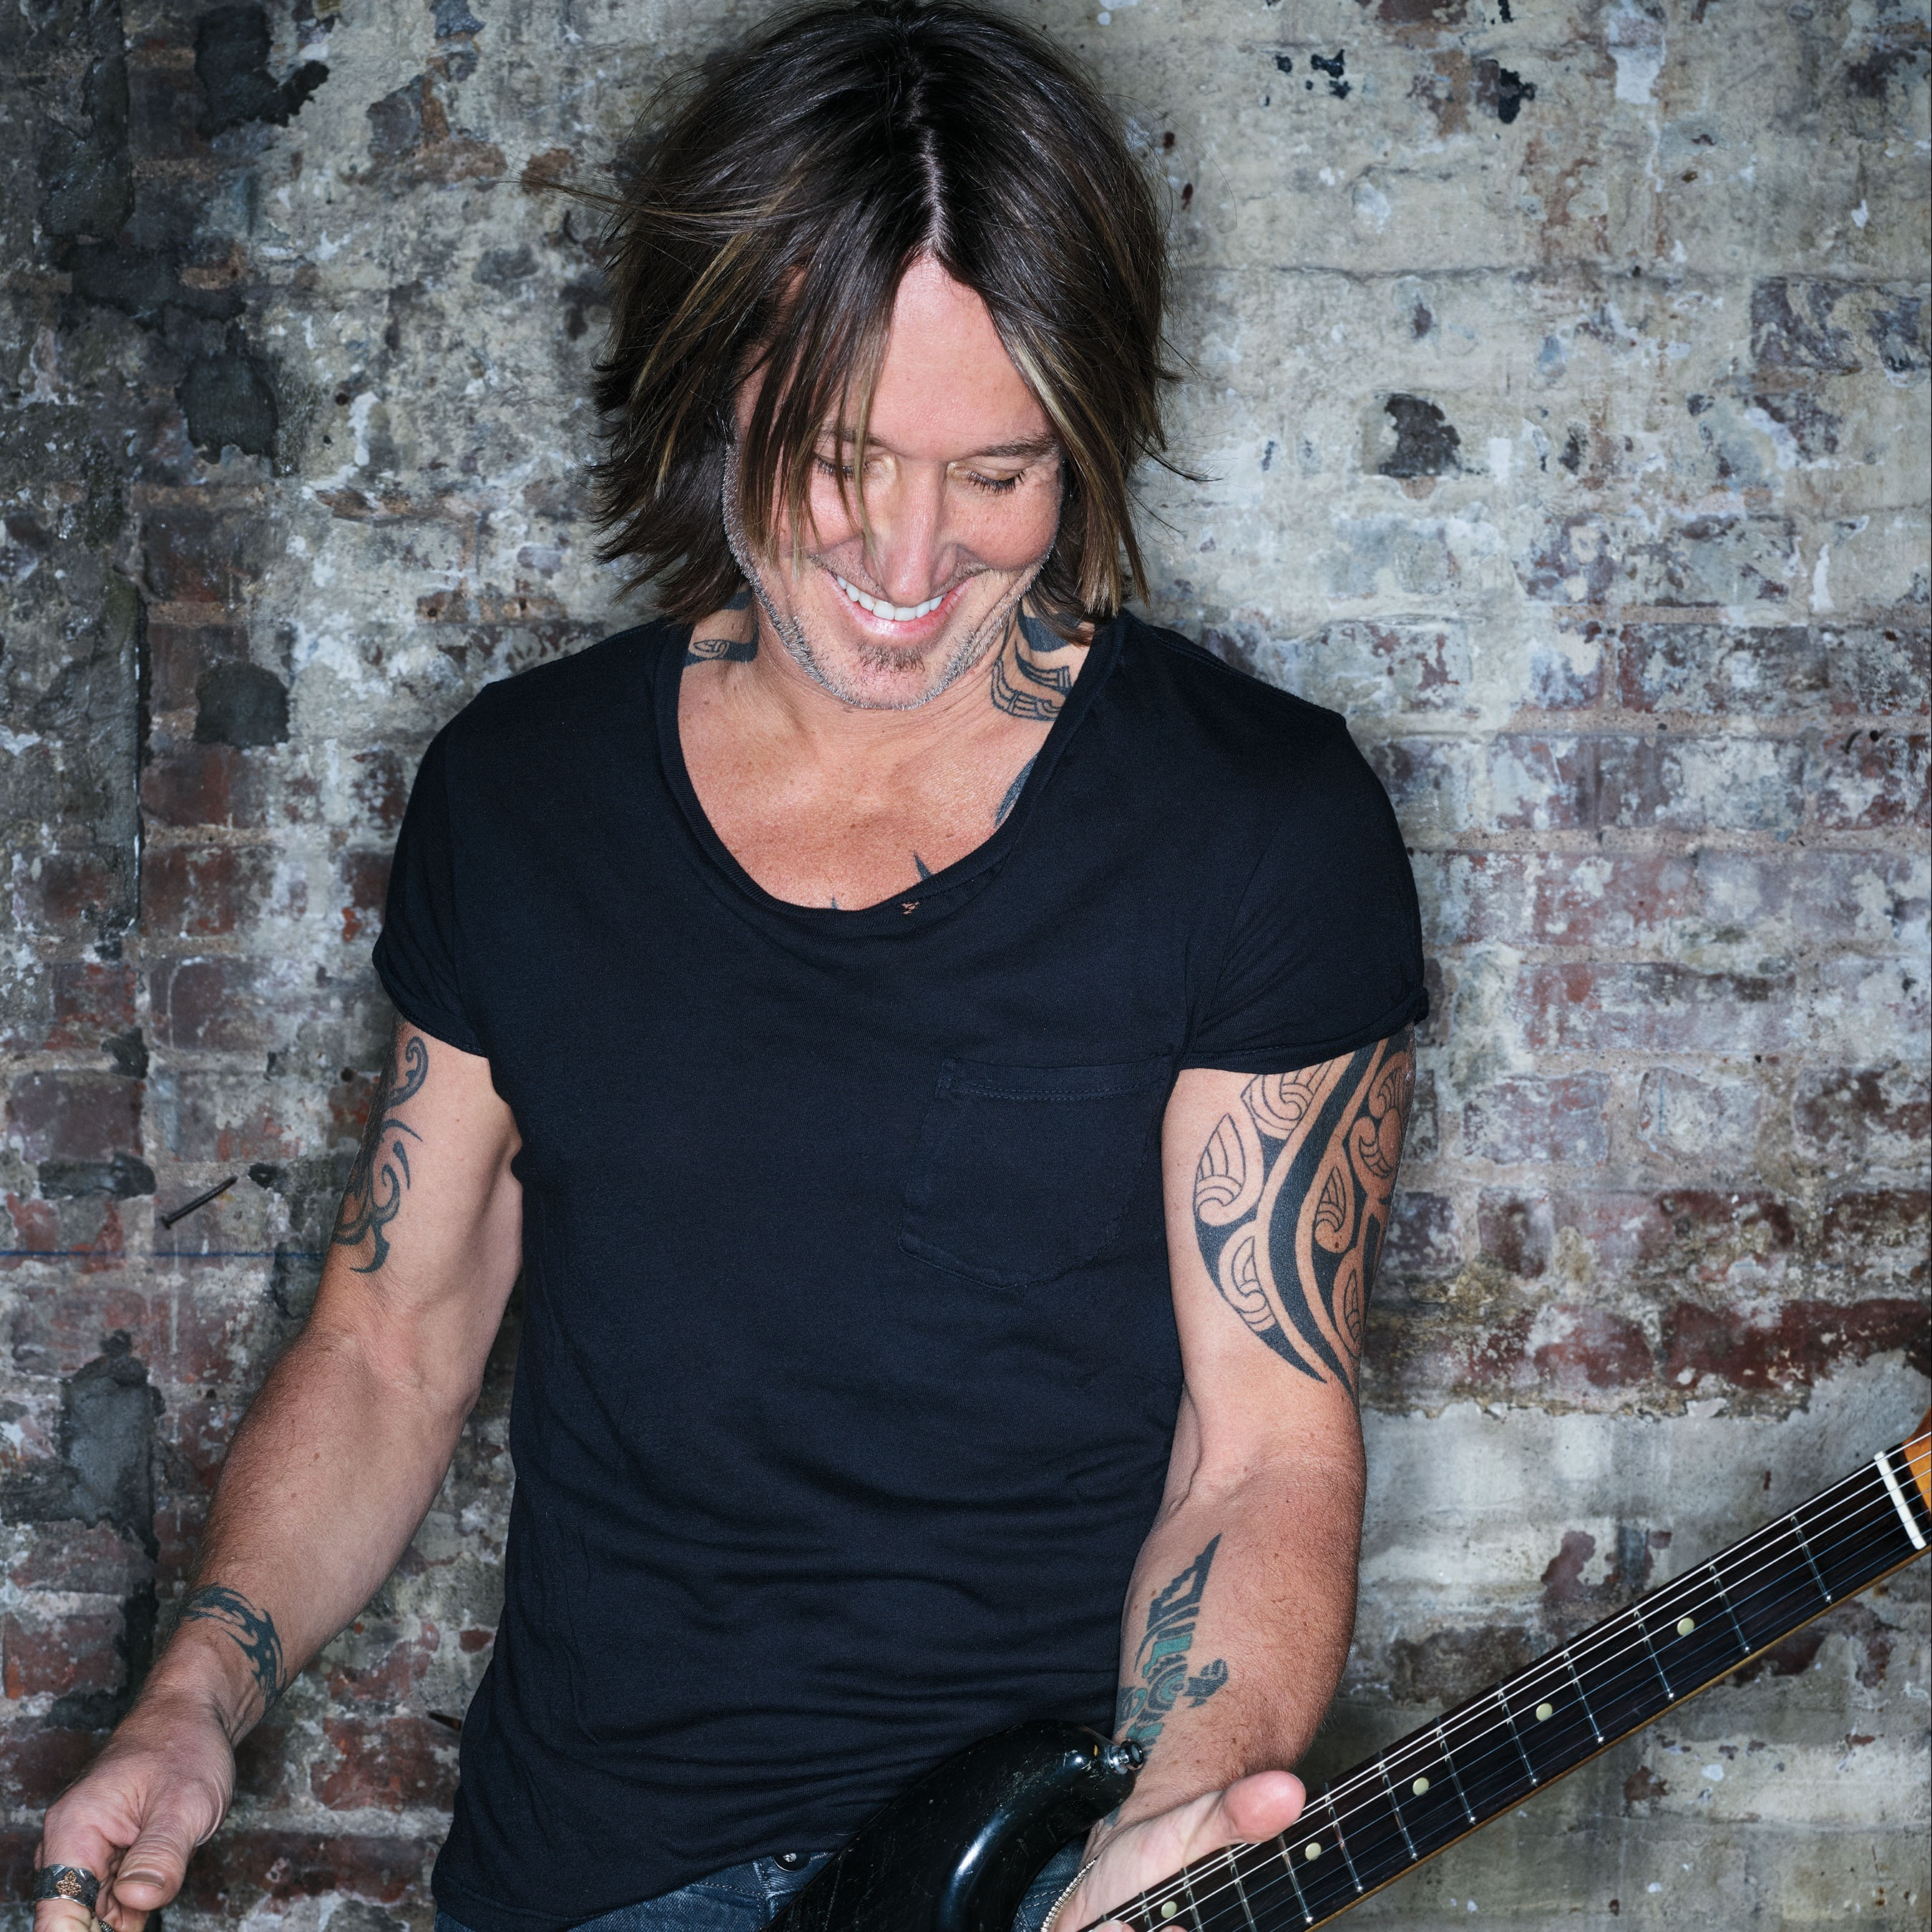 KEITH URBAN TO OPEN THE NEW COLOSSEUM AT CAESAR'S PALACE.